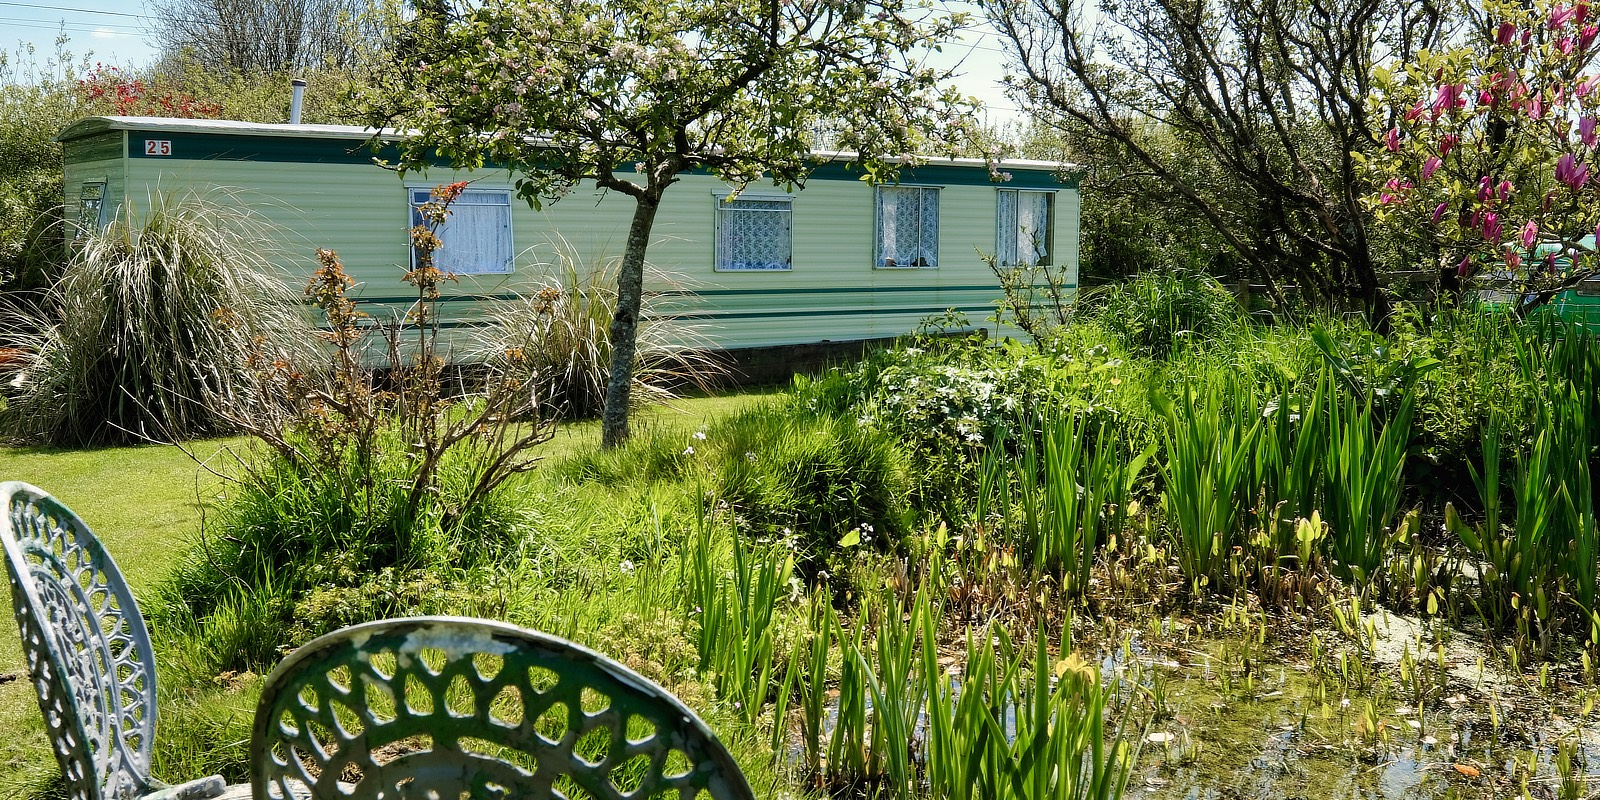 bed breakfast exmoor, b&b exmoor, accommodation exmoor, self catering exmoor, camping exmoor